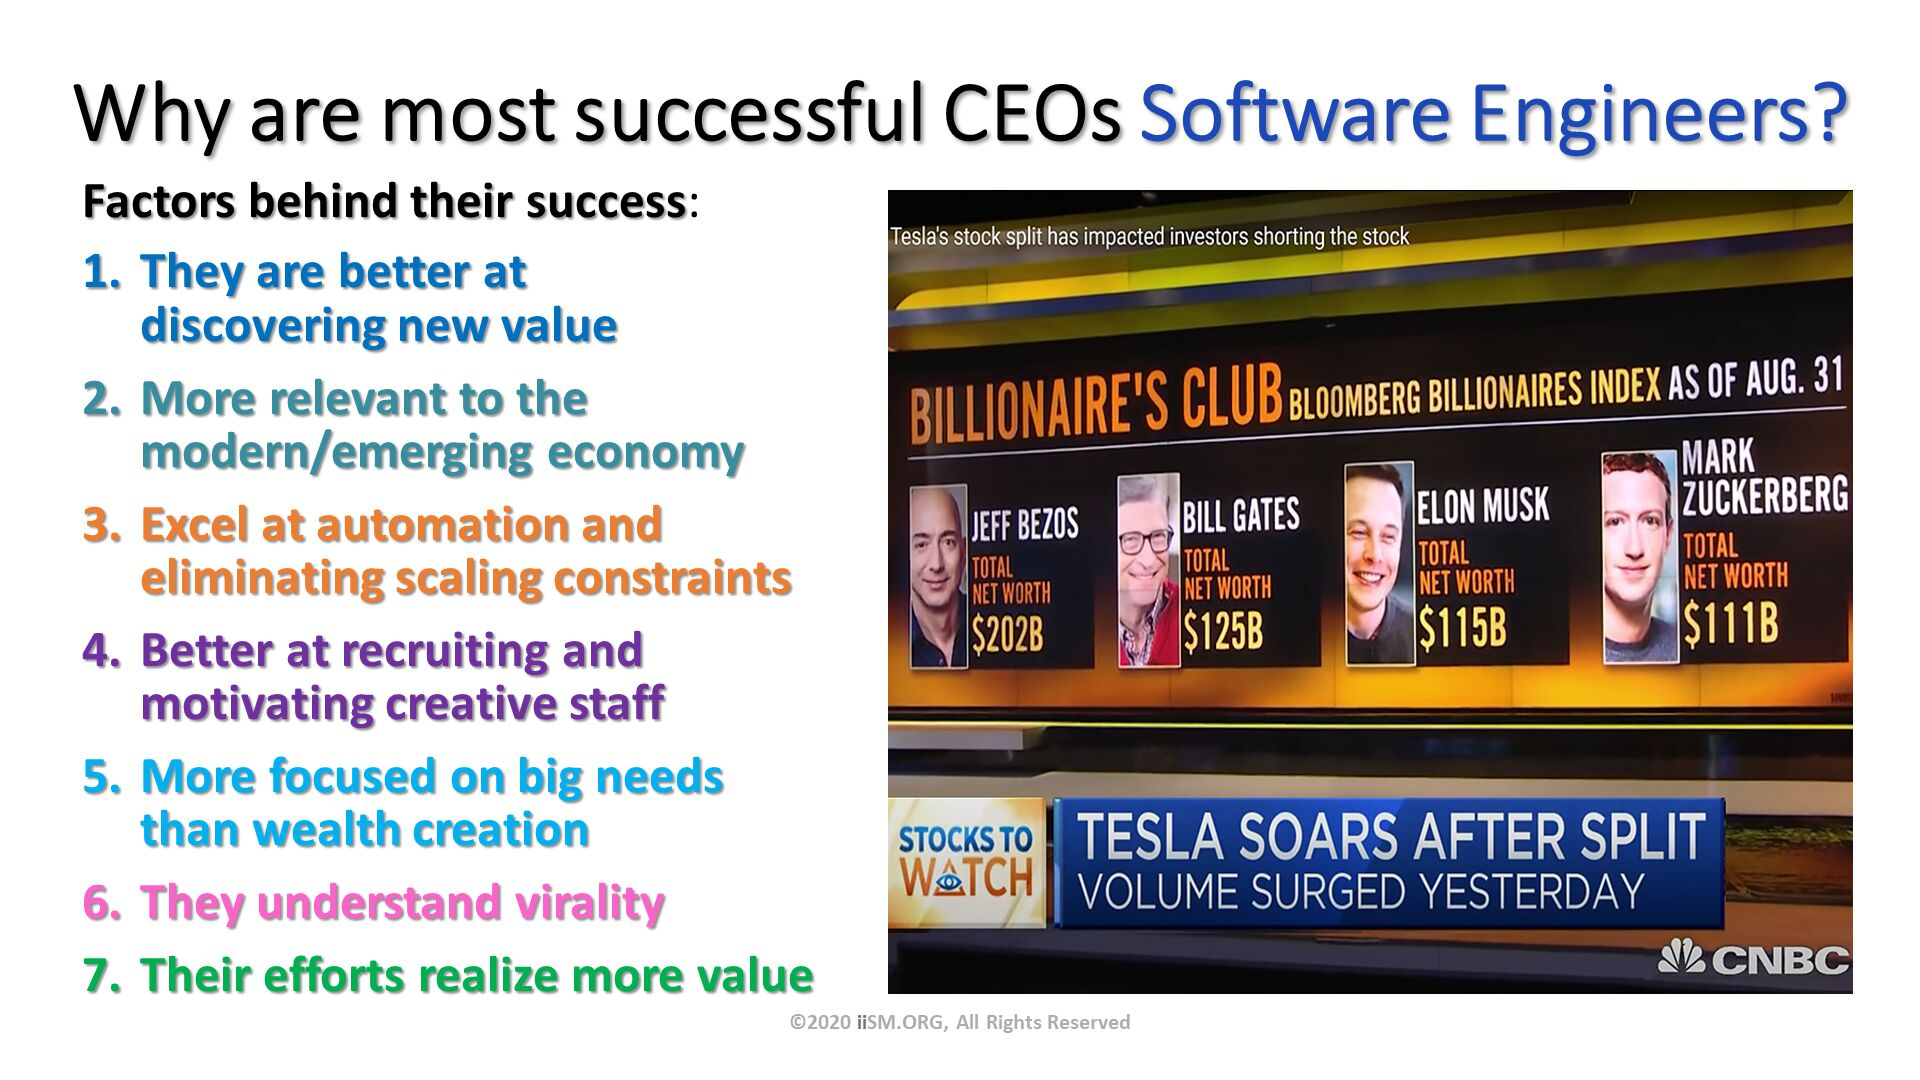 Why are most successful CEOs Software Engineers?. Factors behind their success: They are better at discovering new value More relevant to the modern/emerging economy Excel at automation and eliminating scaling constraints Better at recruiting andmotivating creative staff More focused on big needs than wealth creation They understand virality Their efforts realize more value. ©2020 iiSM.ORG, All Rights Reserved.